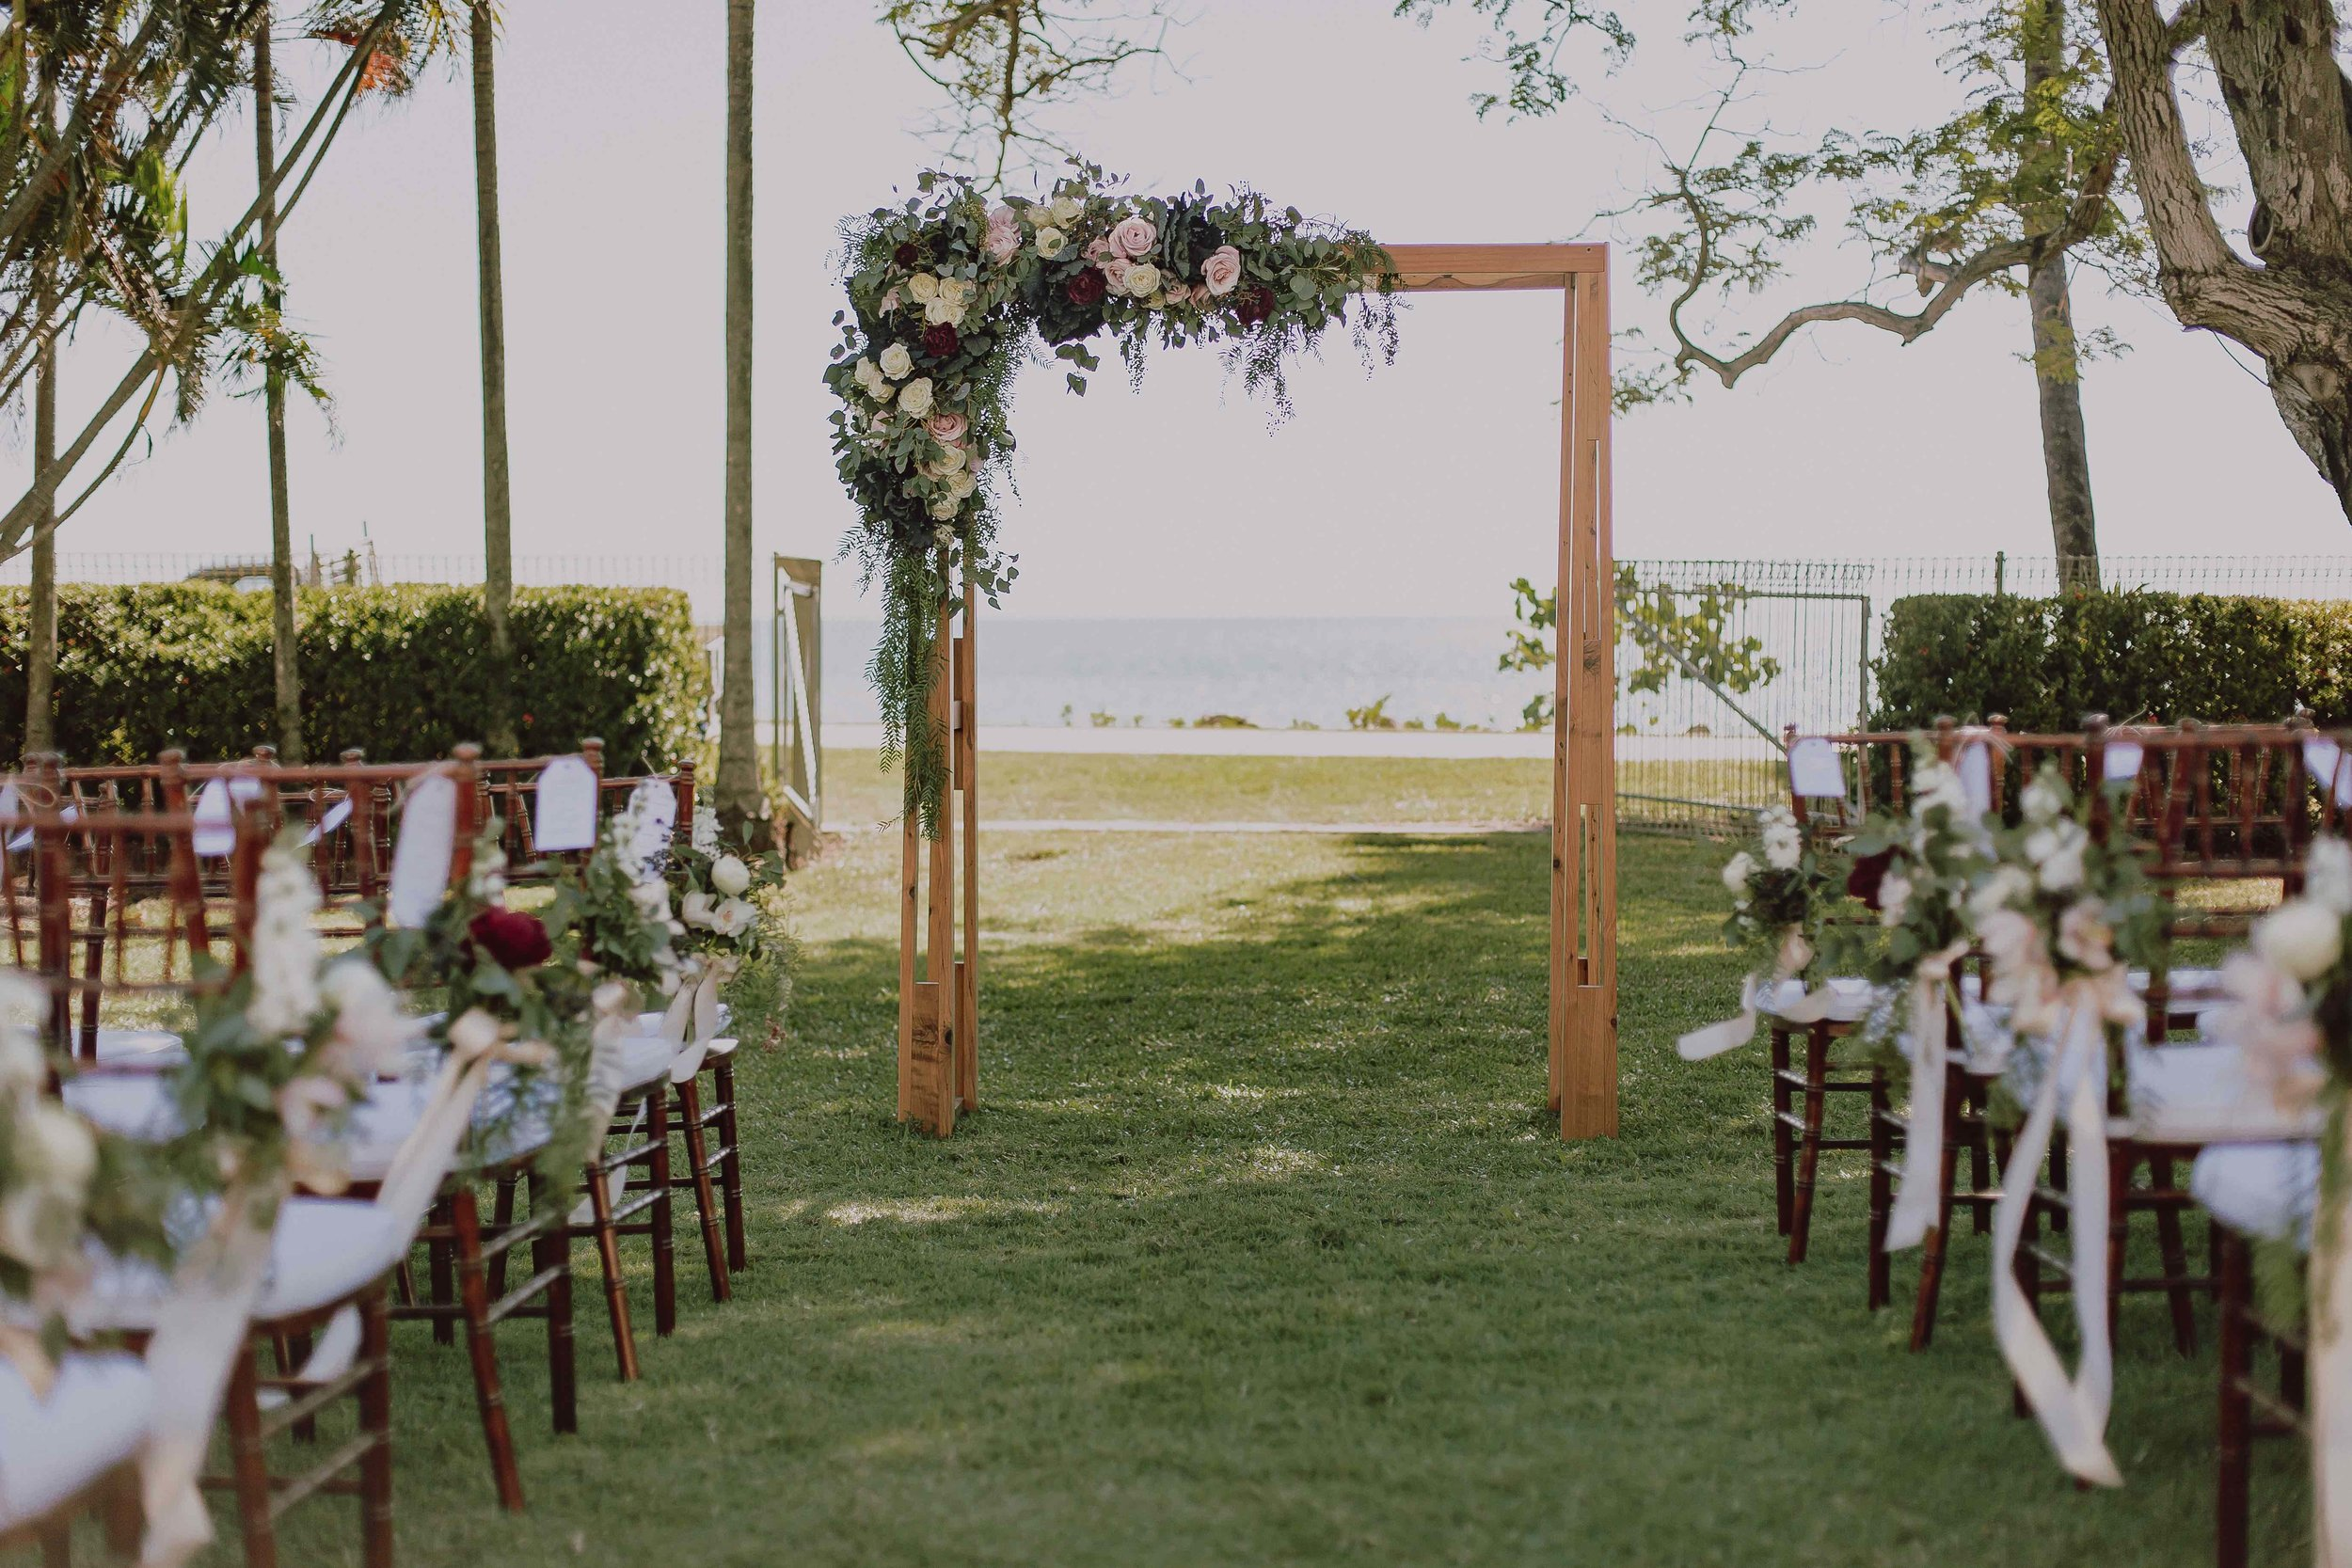 wedding ceremony at Mindel Beach Casino lawns, timber wedding arbour from Beija Flor